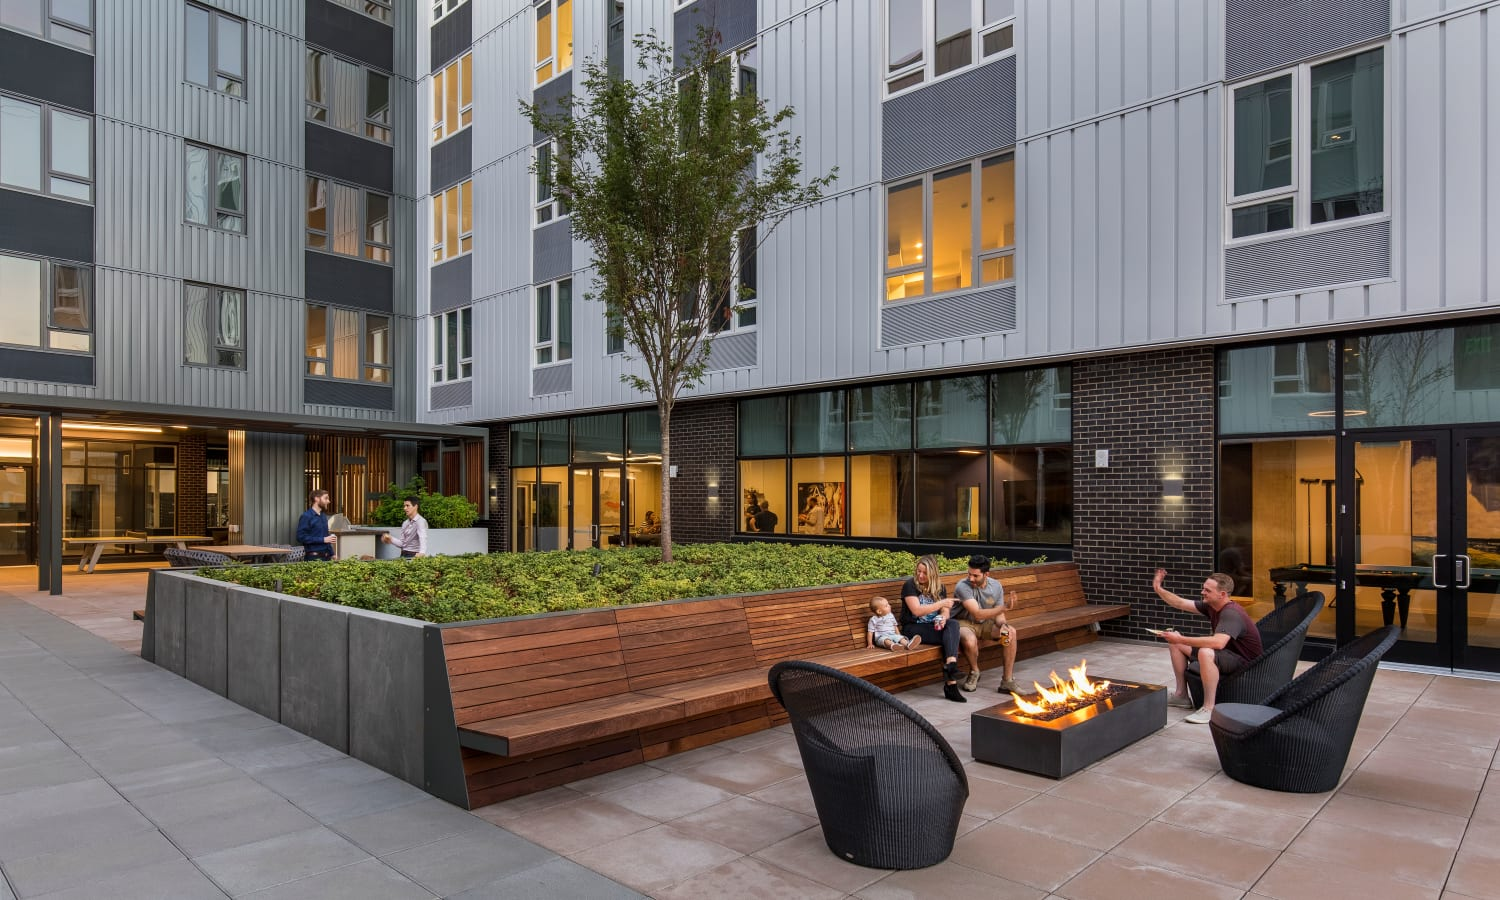 Luxury apartments with a private patio in Portland, Oregon